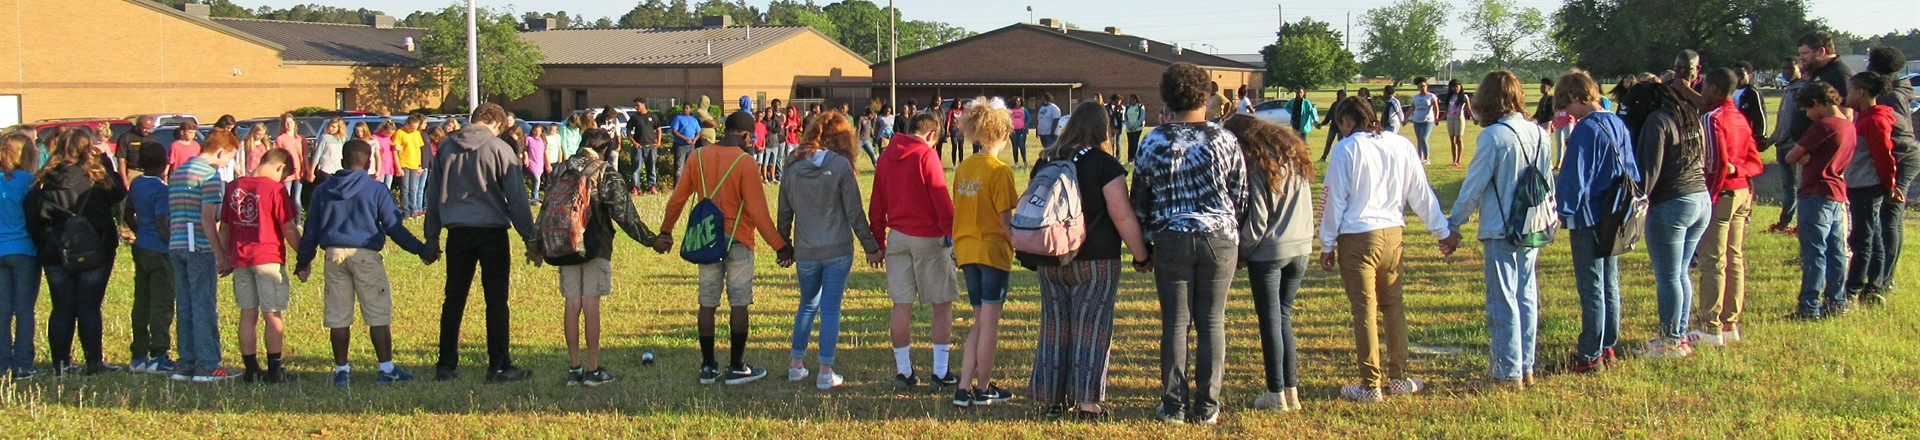 FCA Meeting - Prayer at the Pole